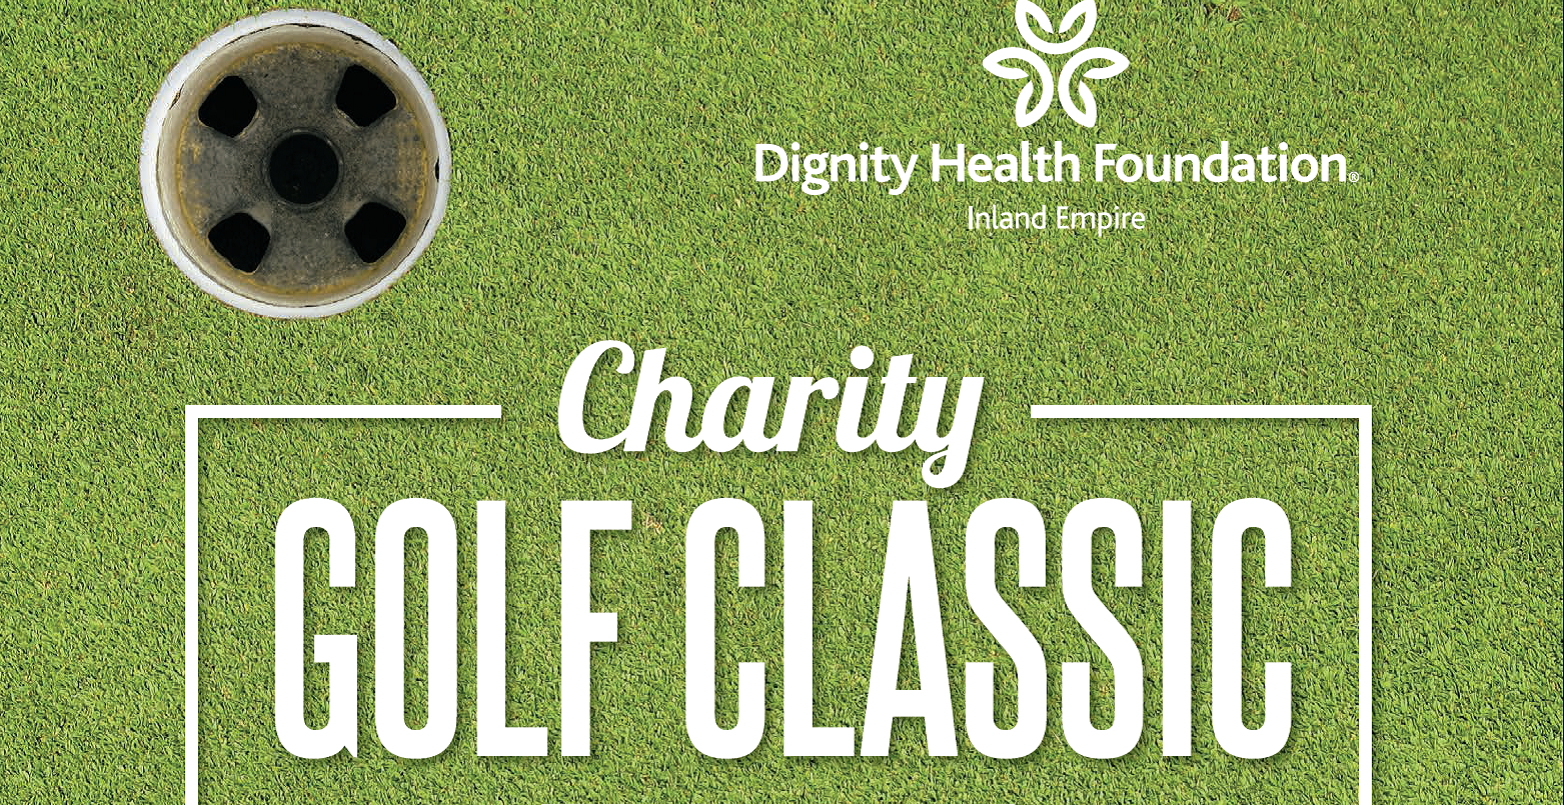 Charity Golf Classic Banner Monday, June 22, 2020